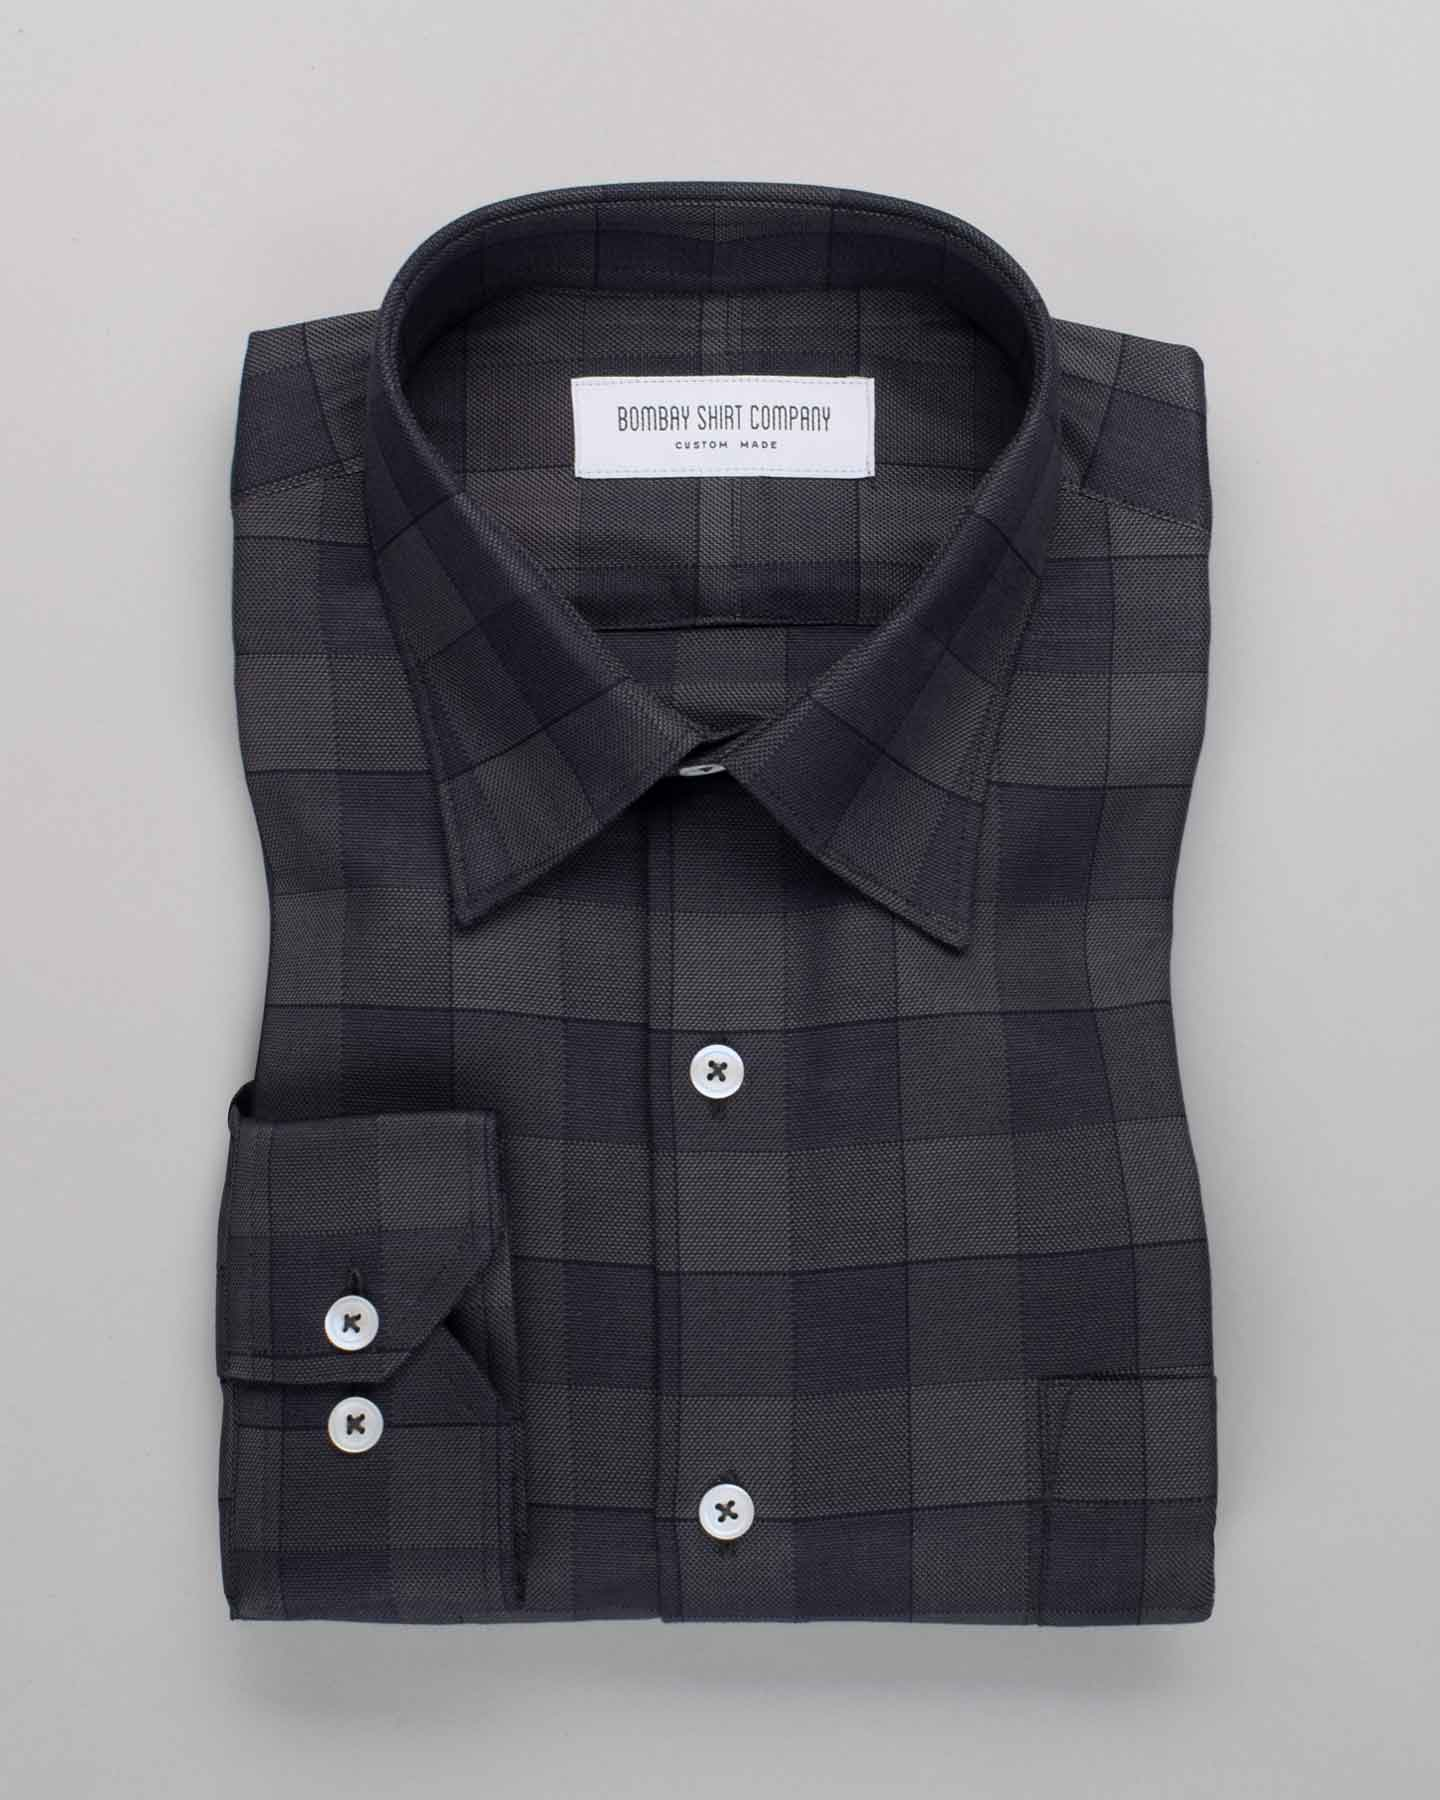 Monti Square Story Shirt